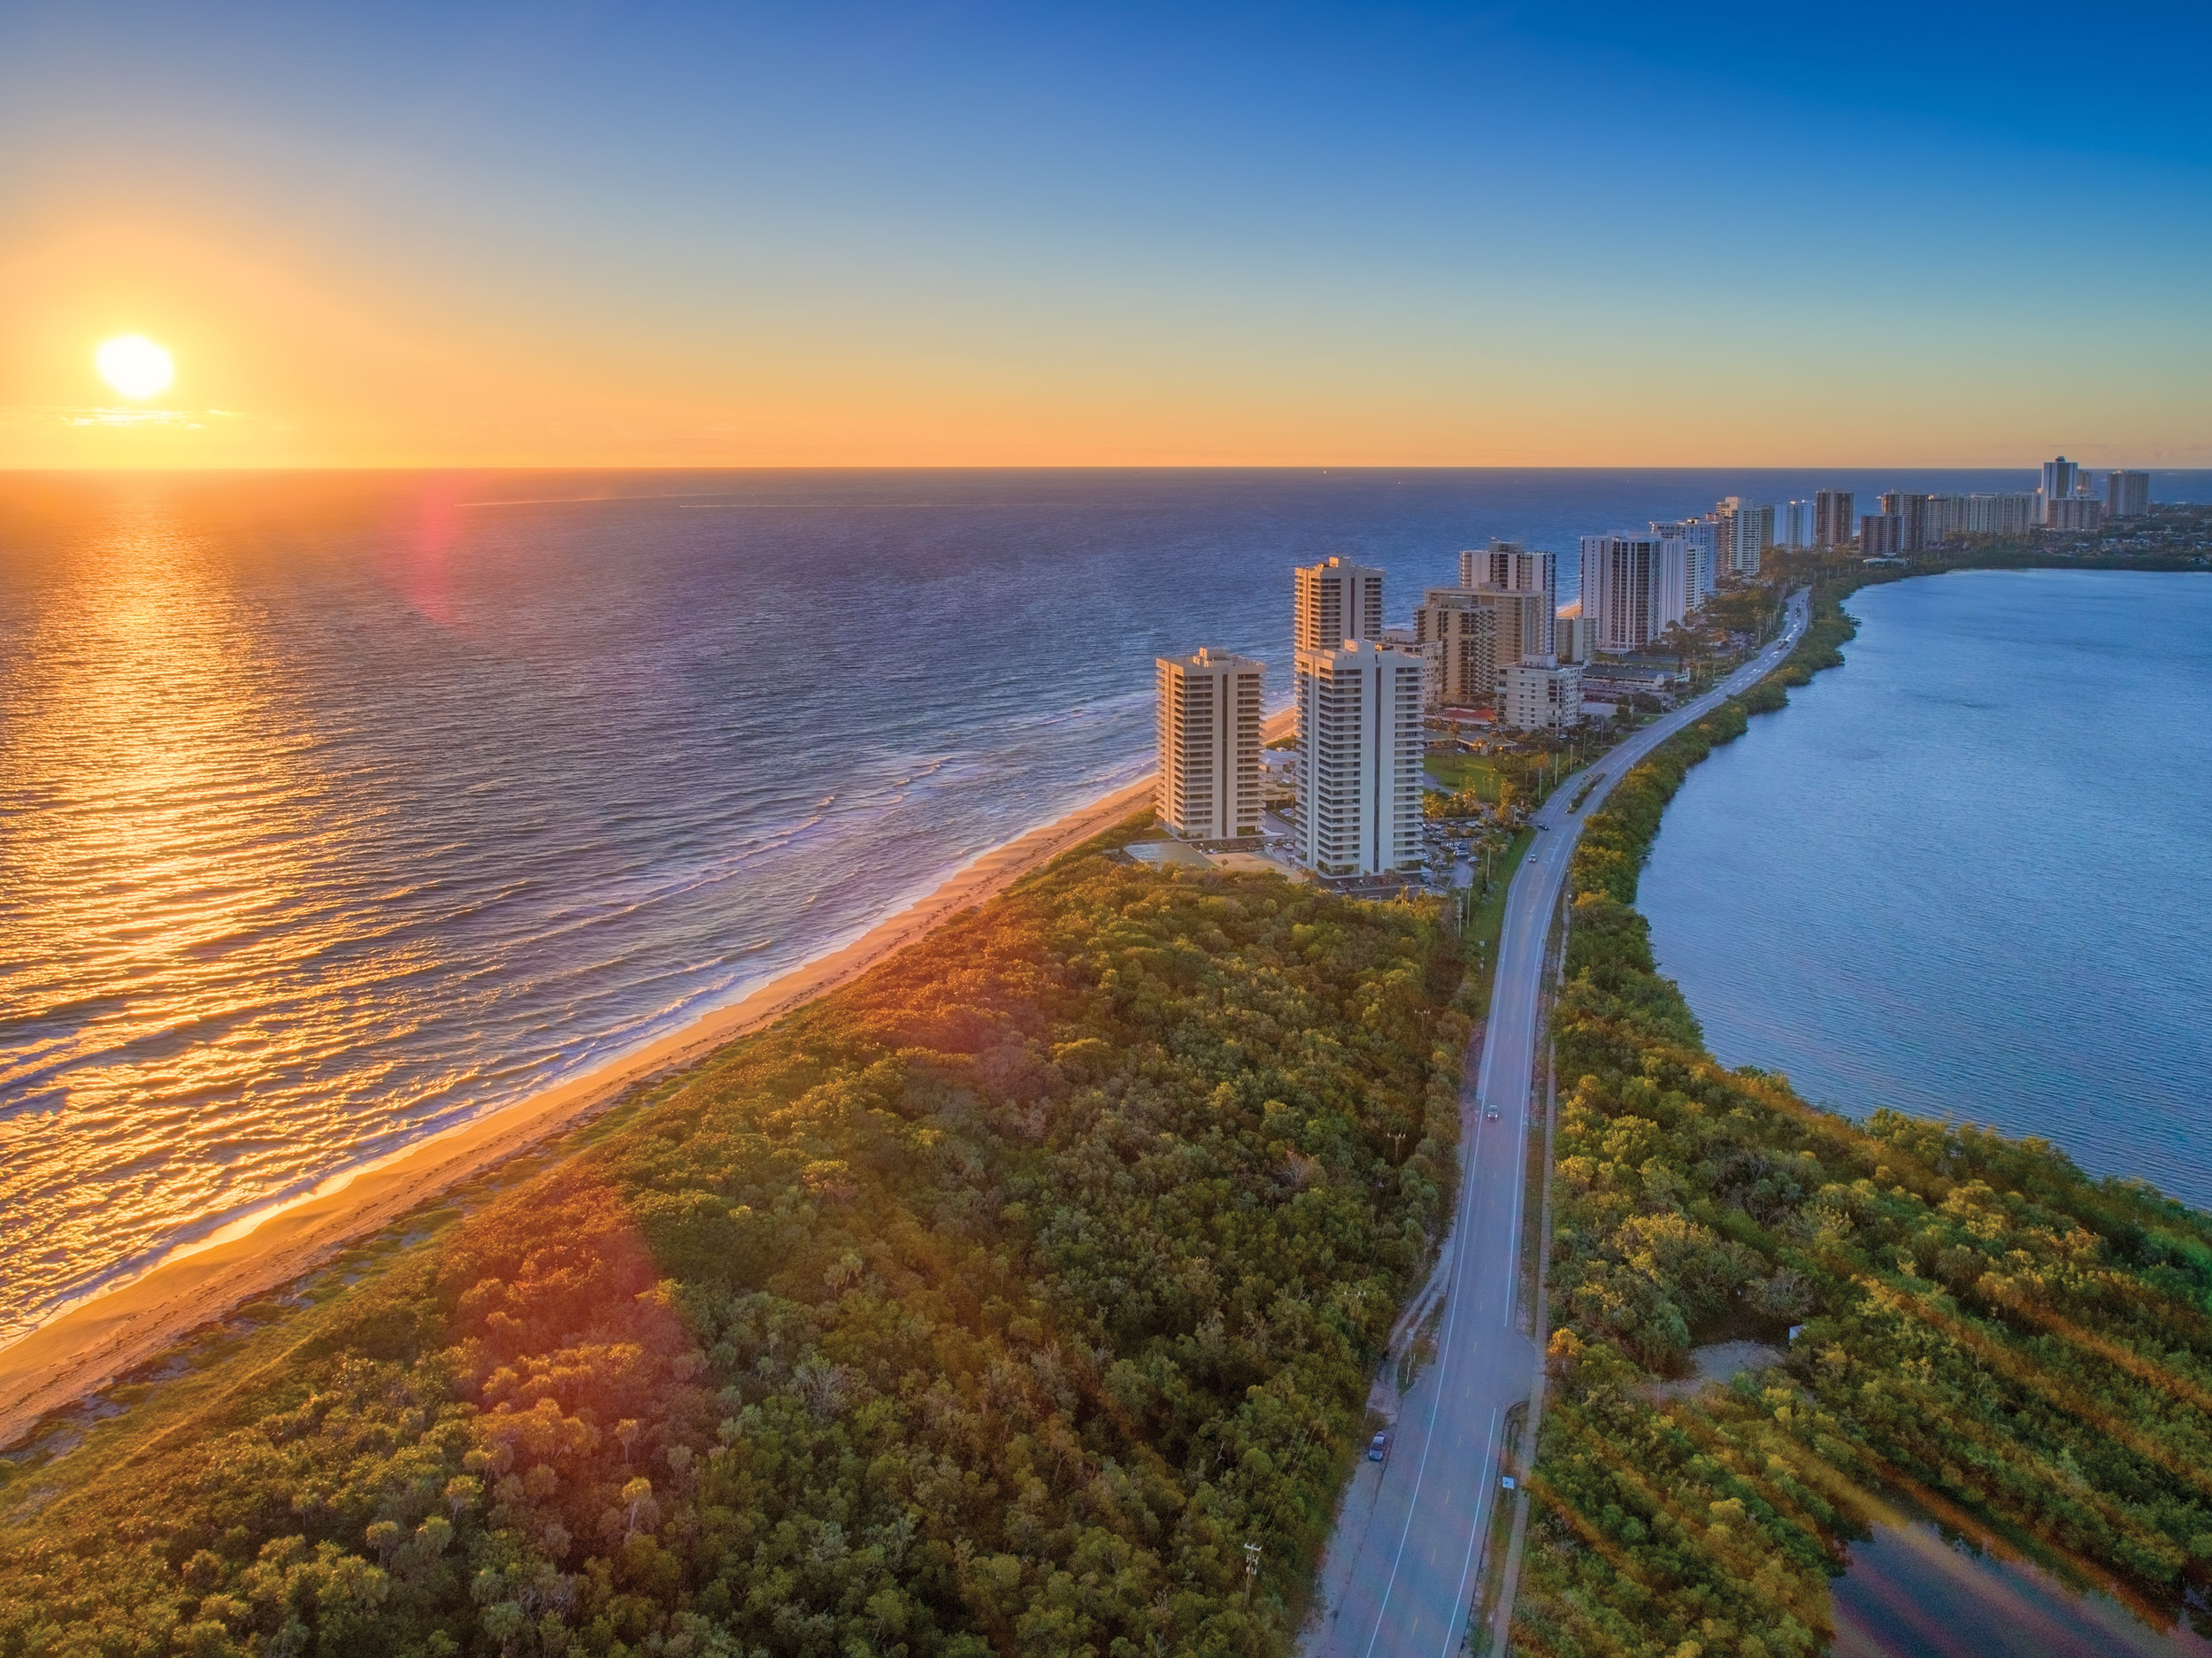 Singer-Island-Condo-Sunrise-Over-Atlantic-Ocean-01.jpg